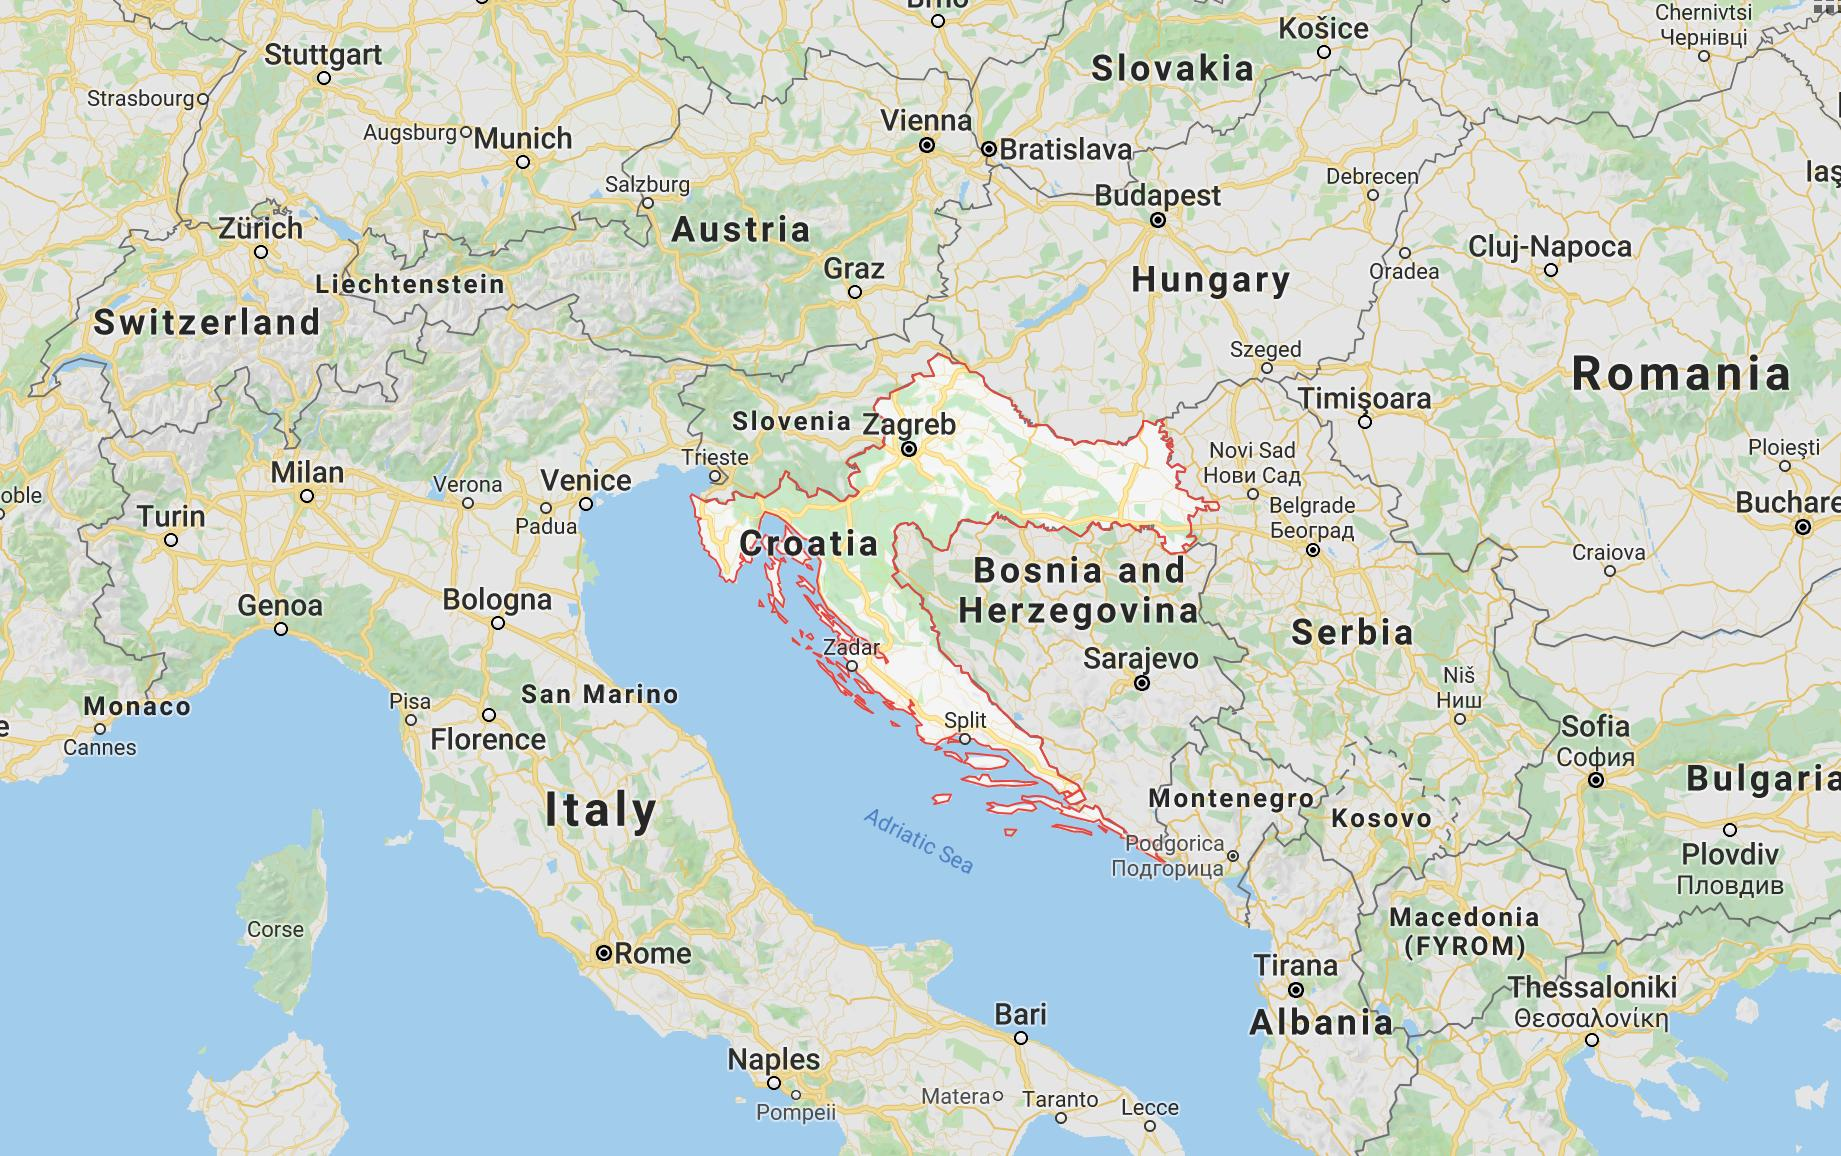 Croatia (outlined in red)